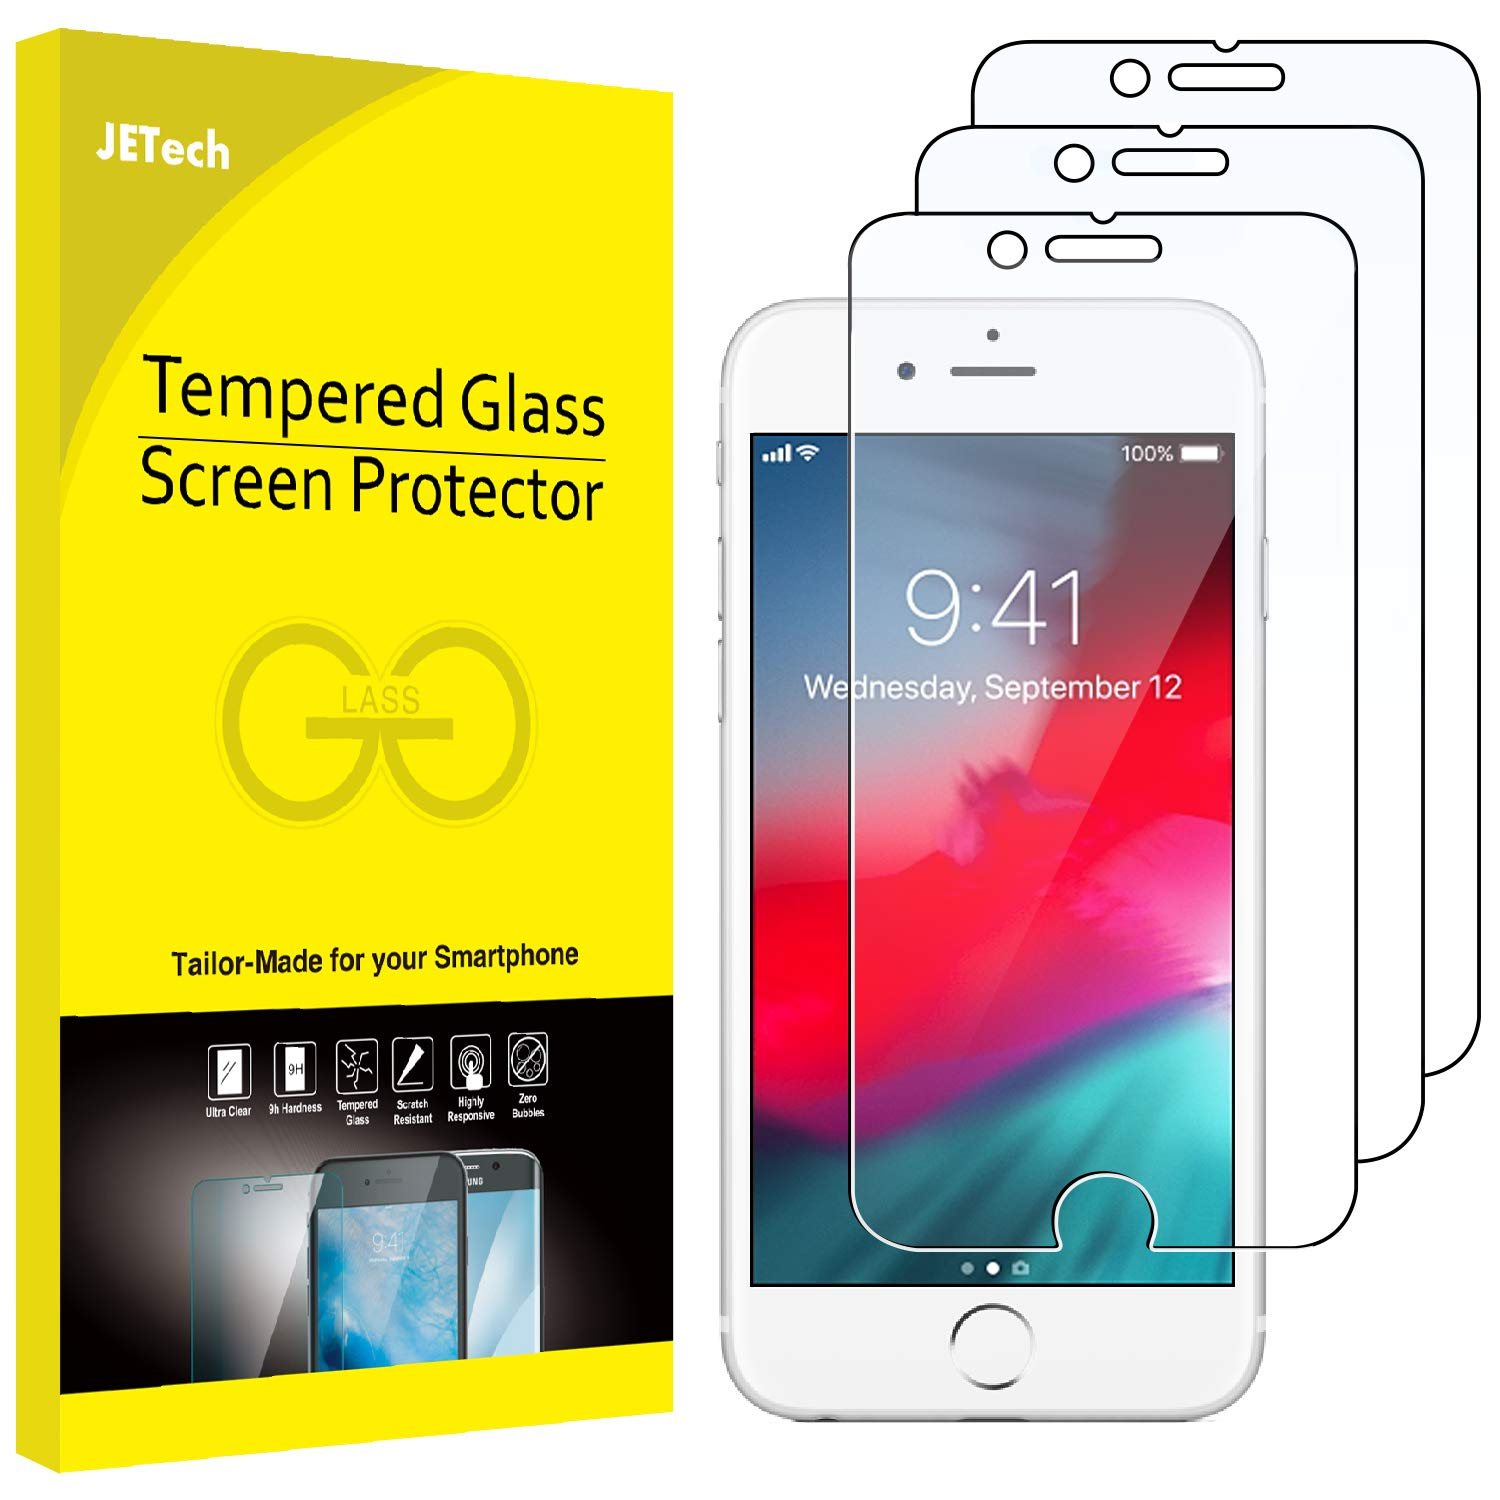 JETech 3-Pack Screen Protector for iPhone 8, iPhone 7, iPhone 6s, and iPhone 6, Tempered Glass Film, 4.7-Inch J0806